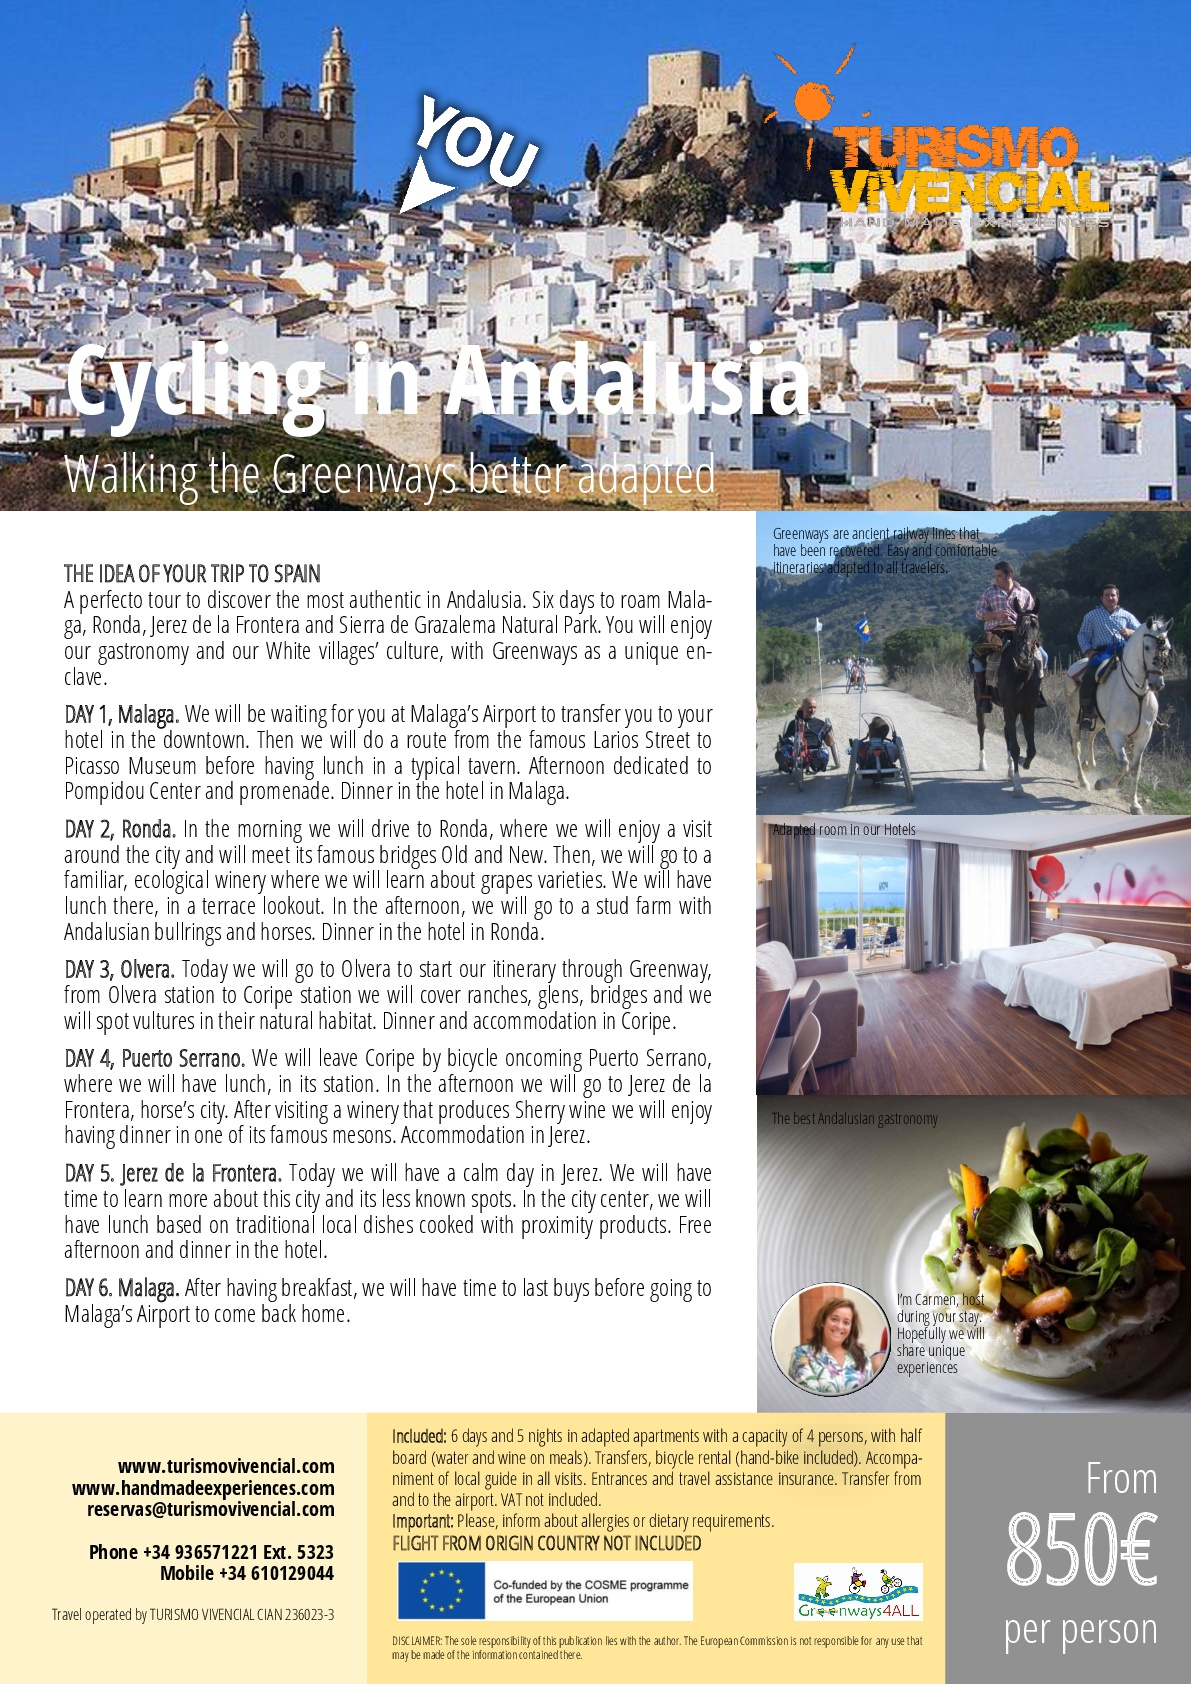 CYCLING IN ANDALUSIA, SPAIN